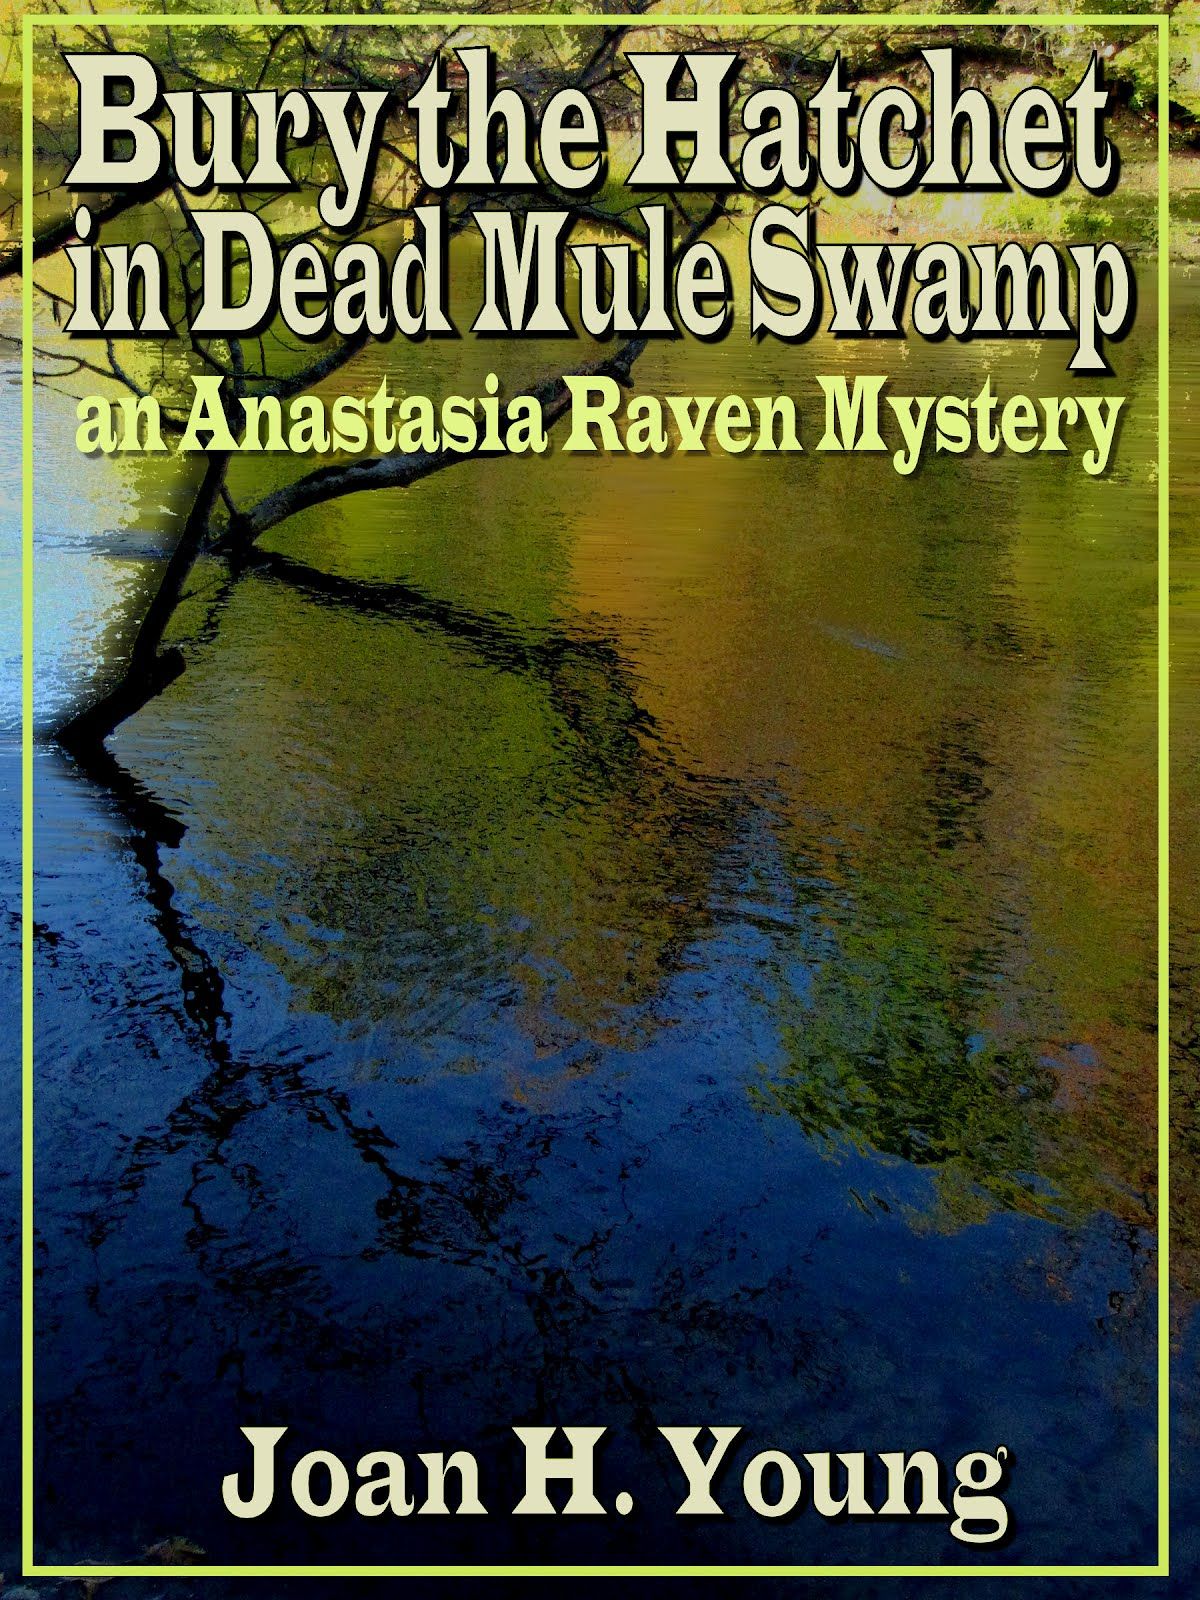 cover for Bury the Hatchet in Dead Mule Swamp